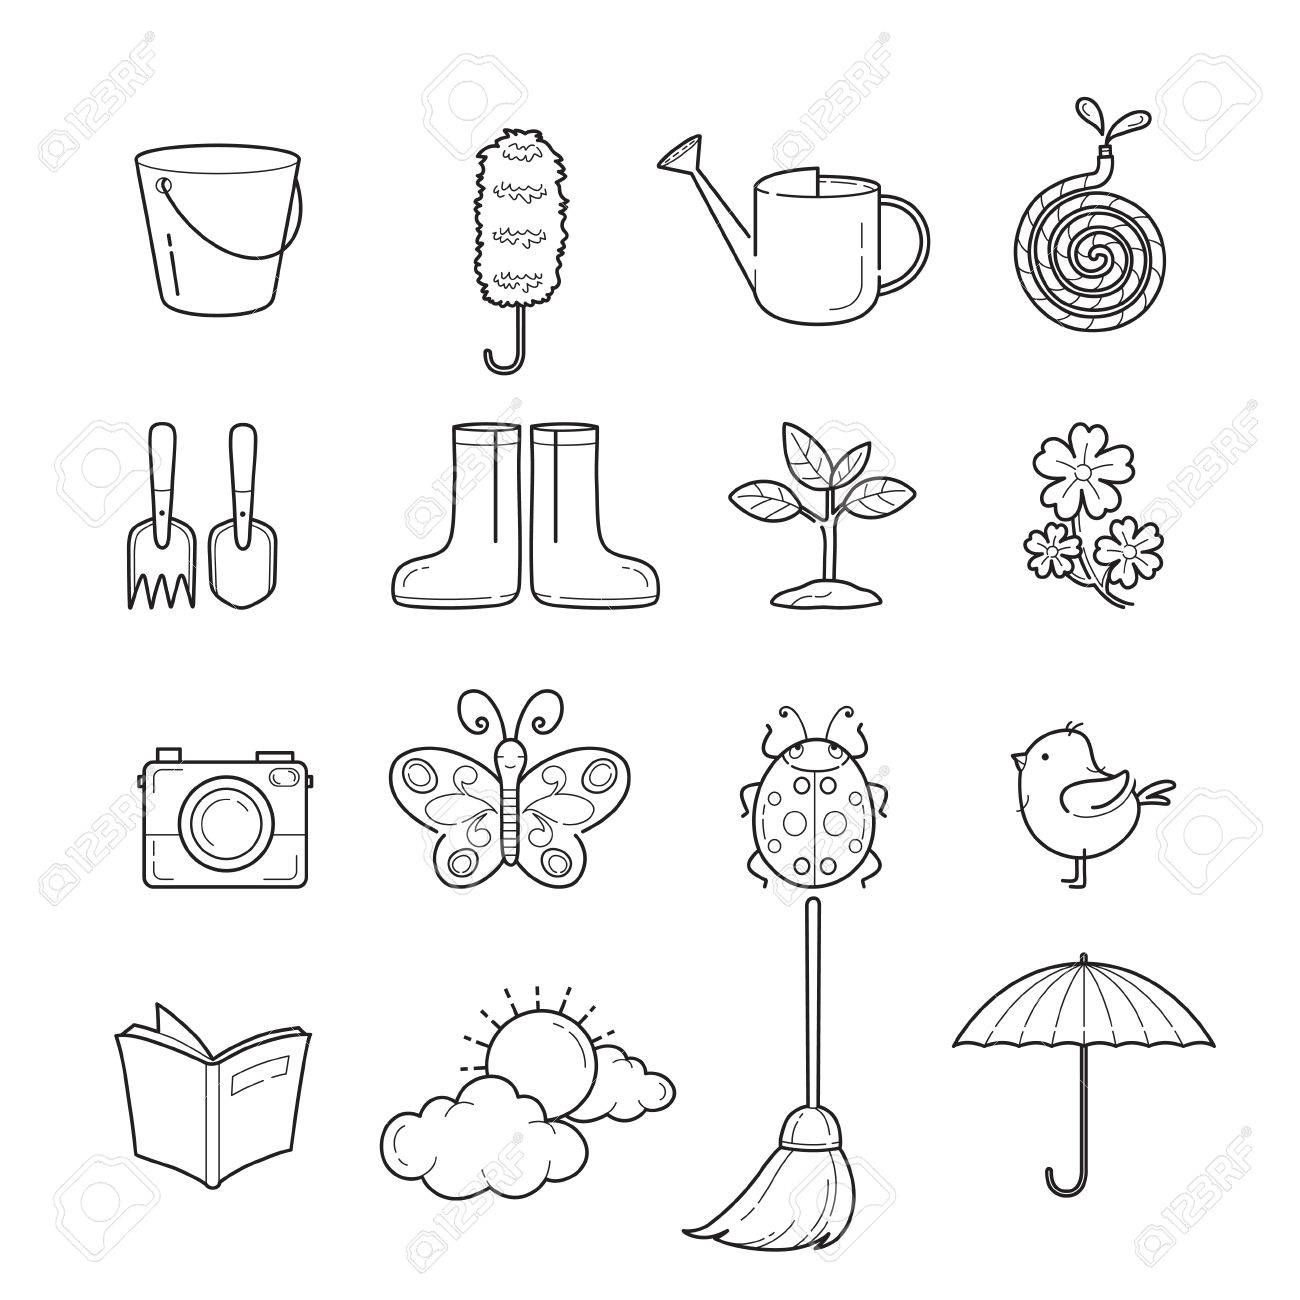 Spring outline icons set gardening housework appliance spring outline icons set gardening housework appliance domestic tools computer icon biocorpaavc